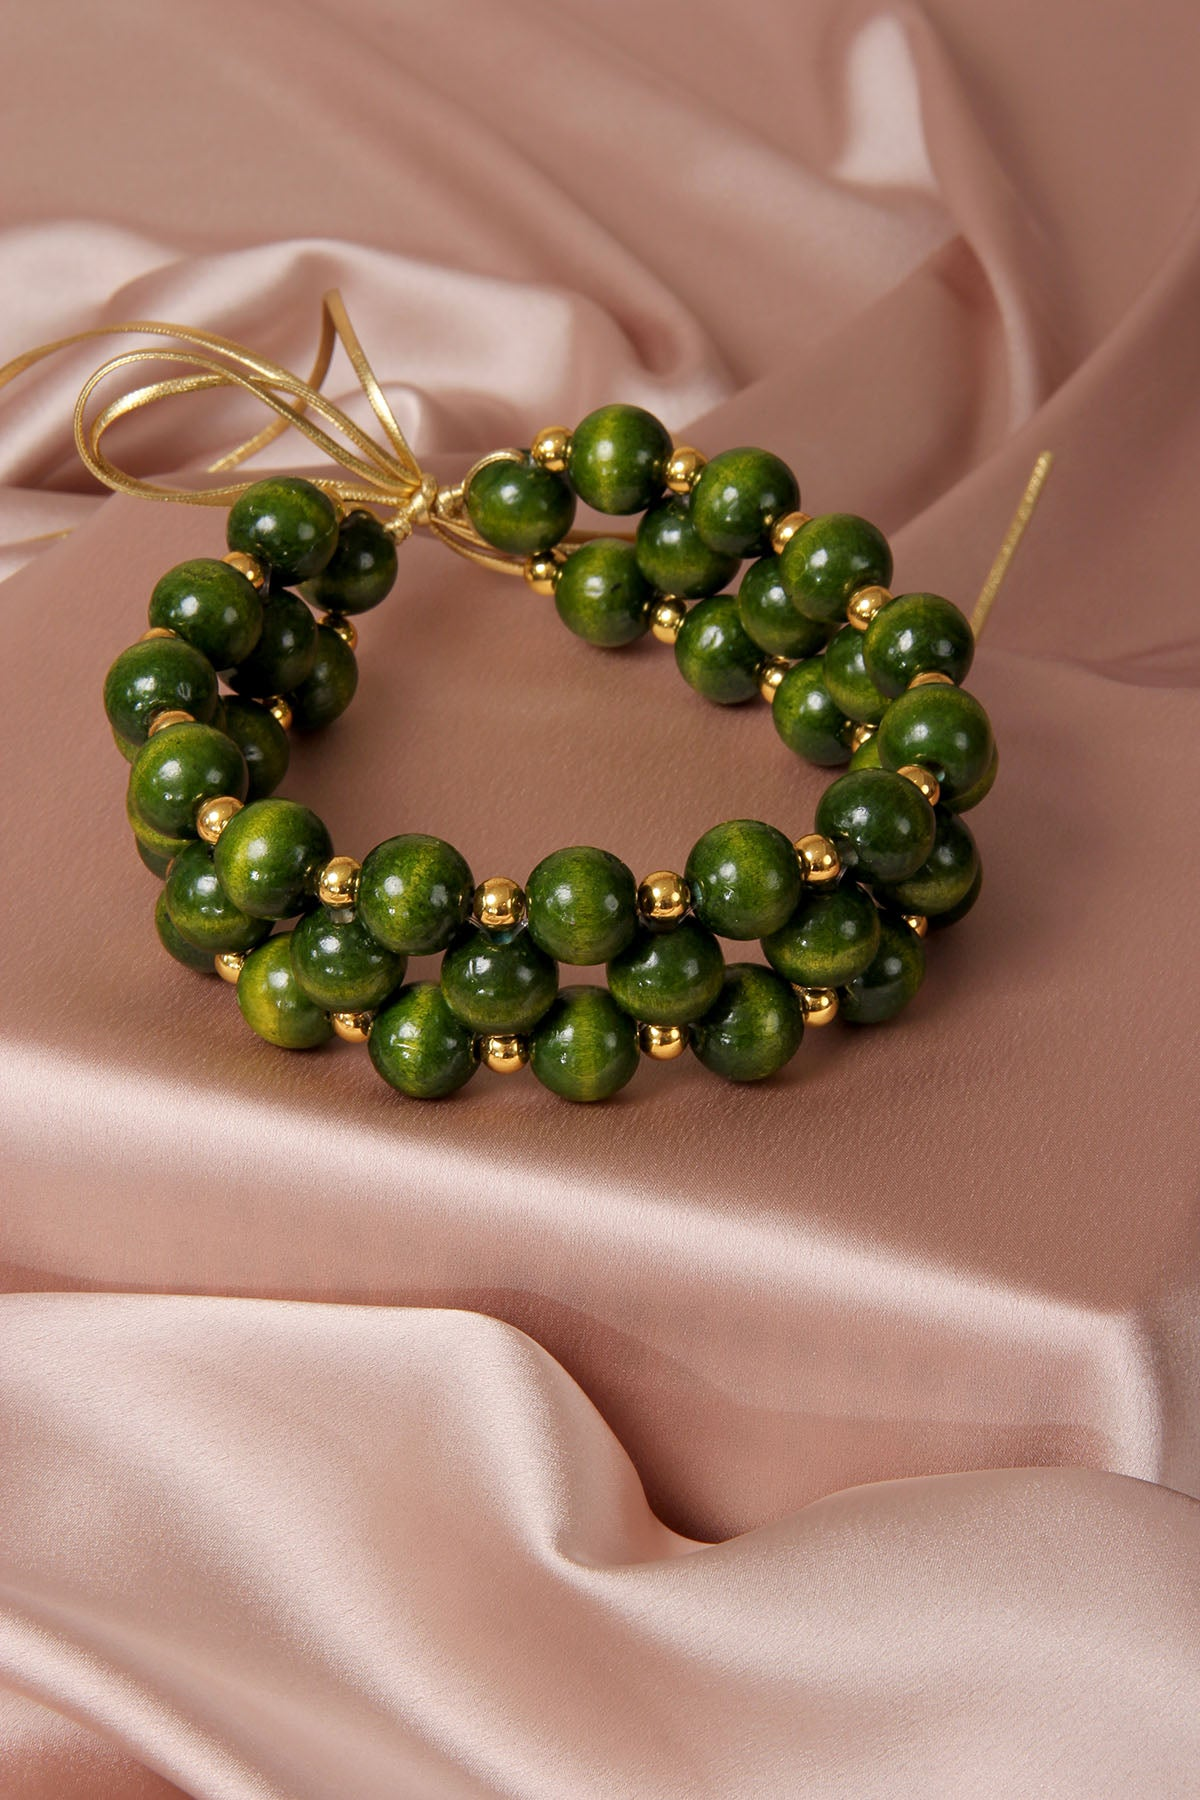 THE SICILIA GREEN NECKLACE